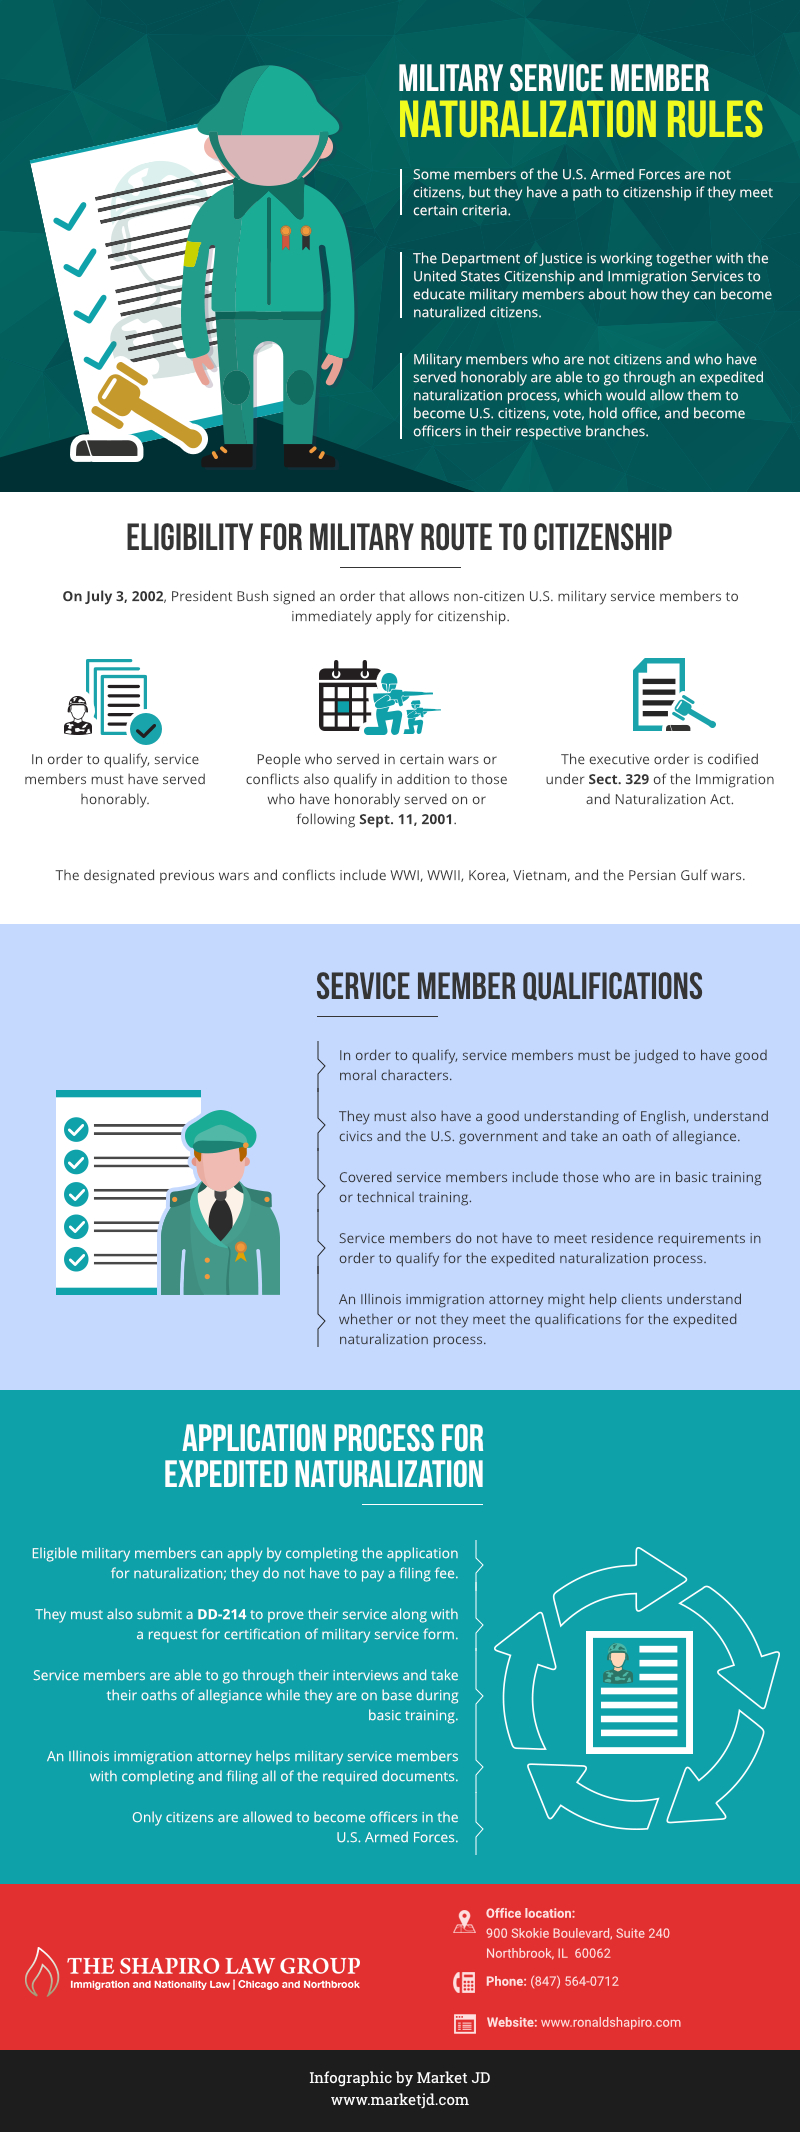 Military Service Member Naturalization Rules_infographic